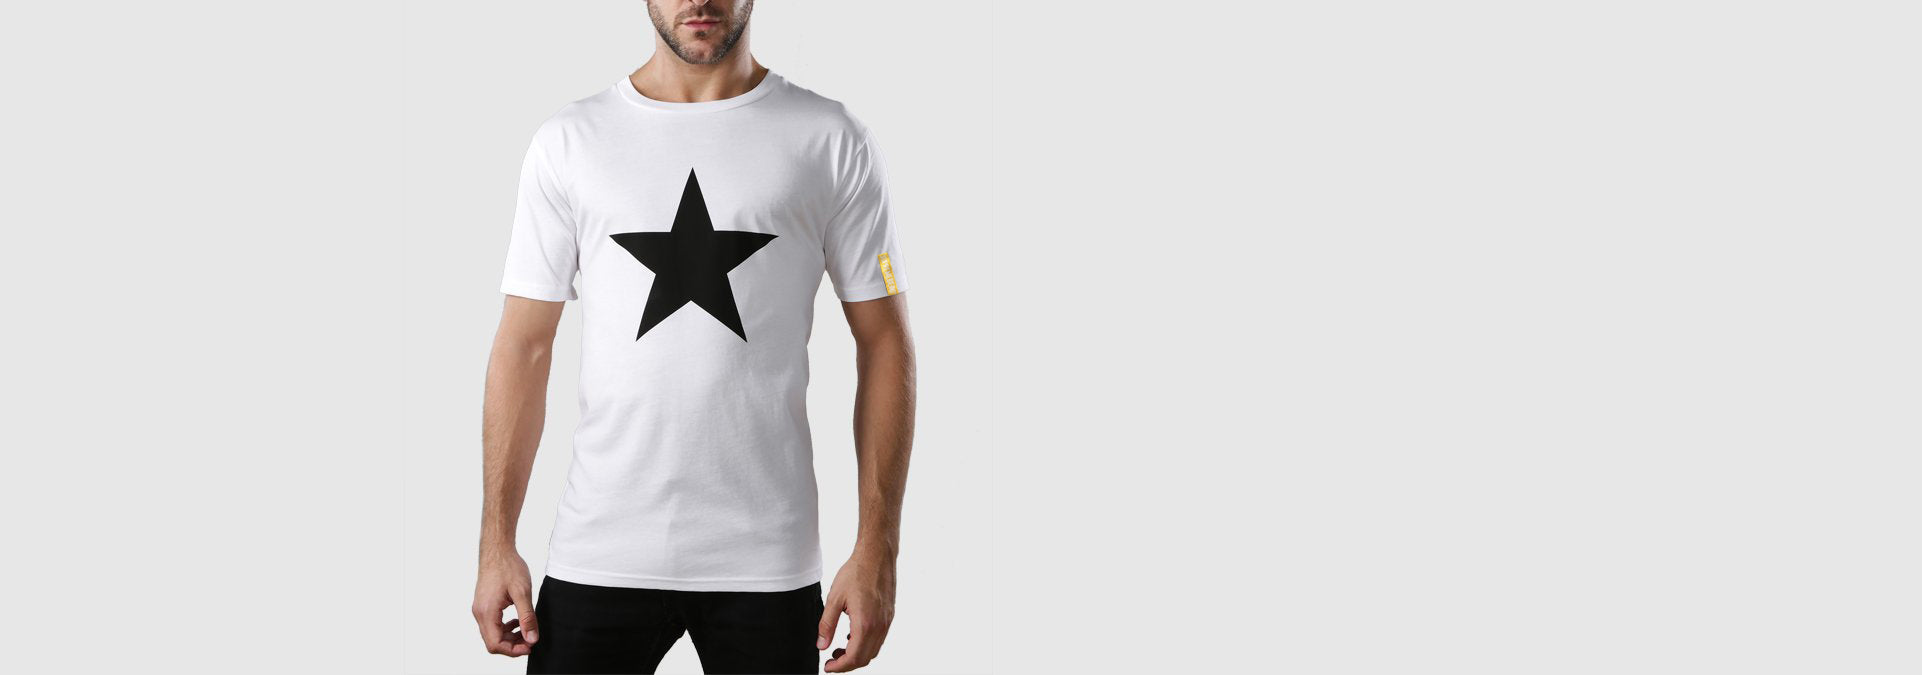 Black Star Organic Cotton T-Shirt White